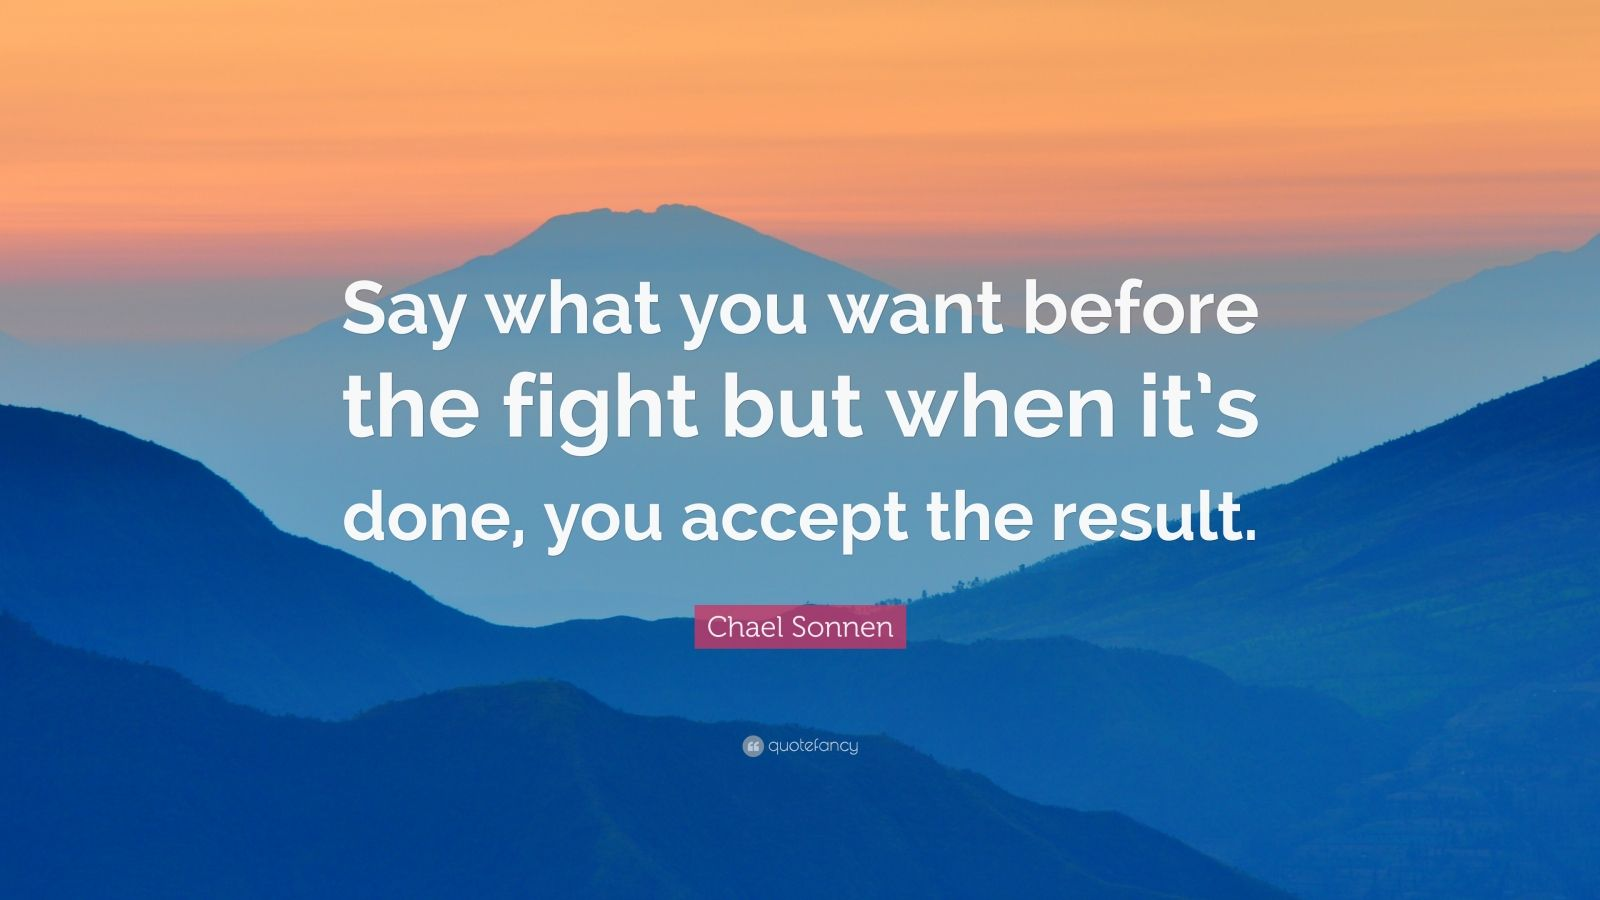 """Chael Sonnen Quote: """"Say what you want before the fight but when it's done, you accept the result."""""""